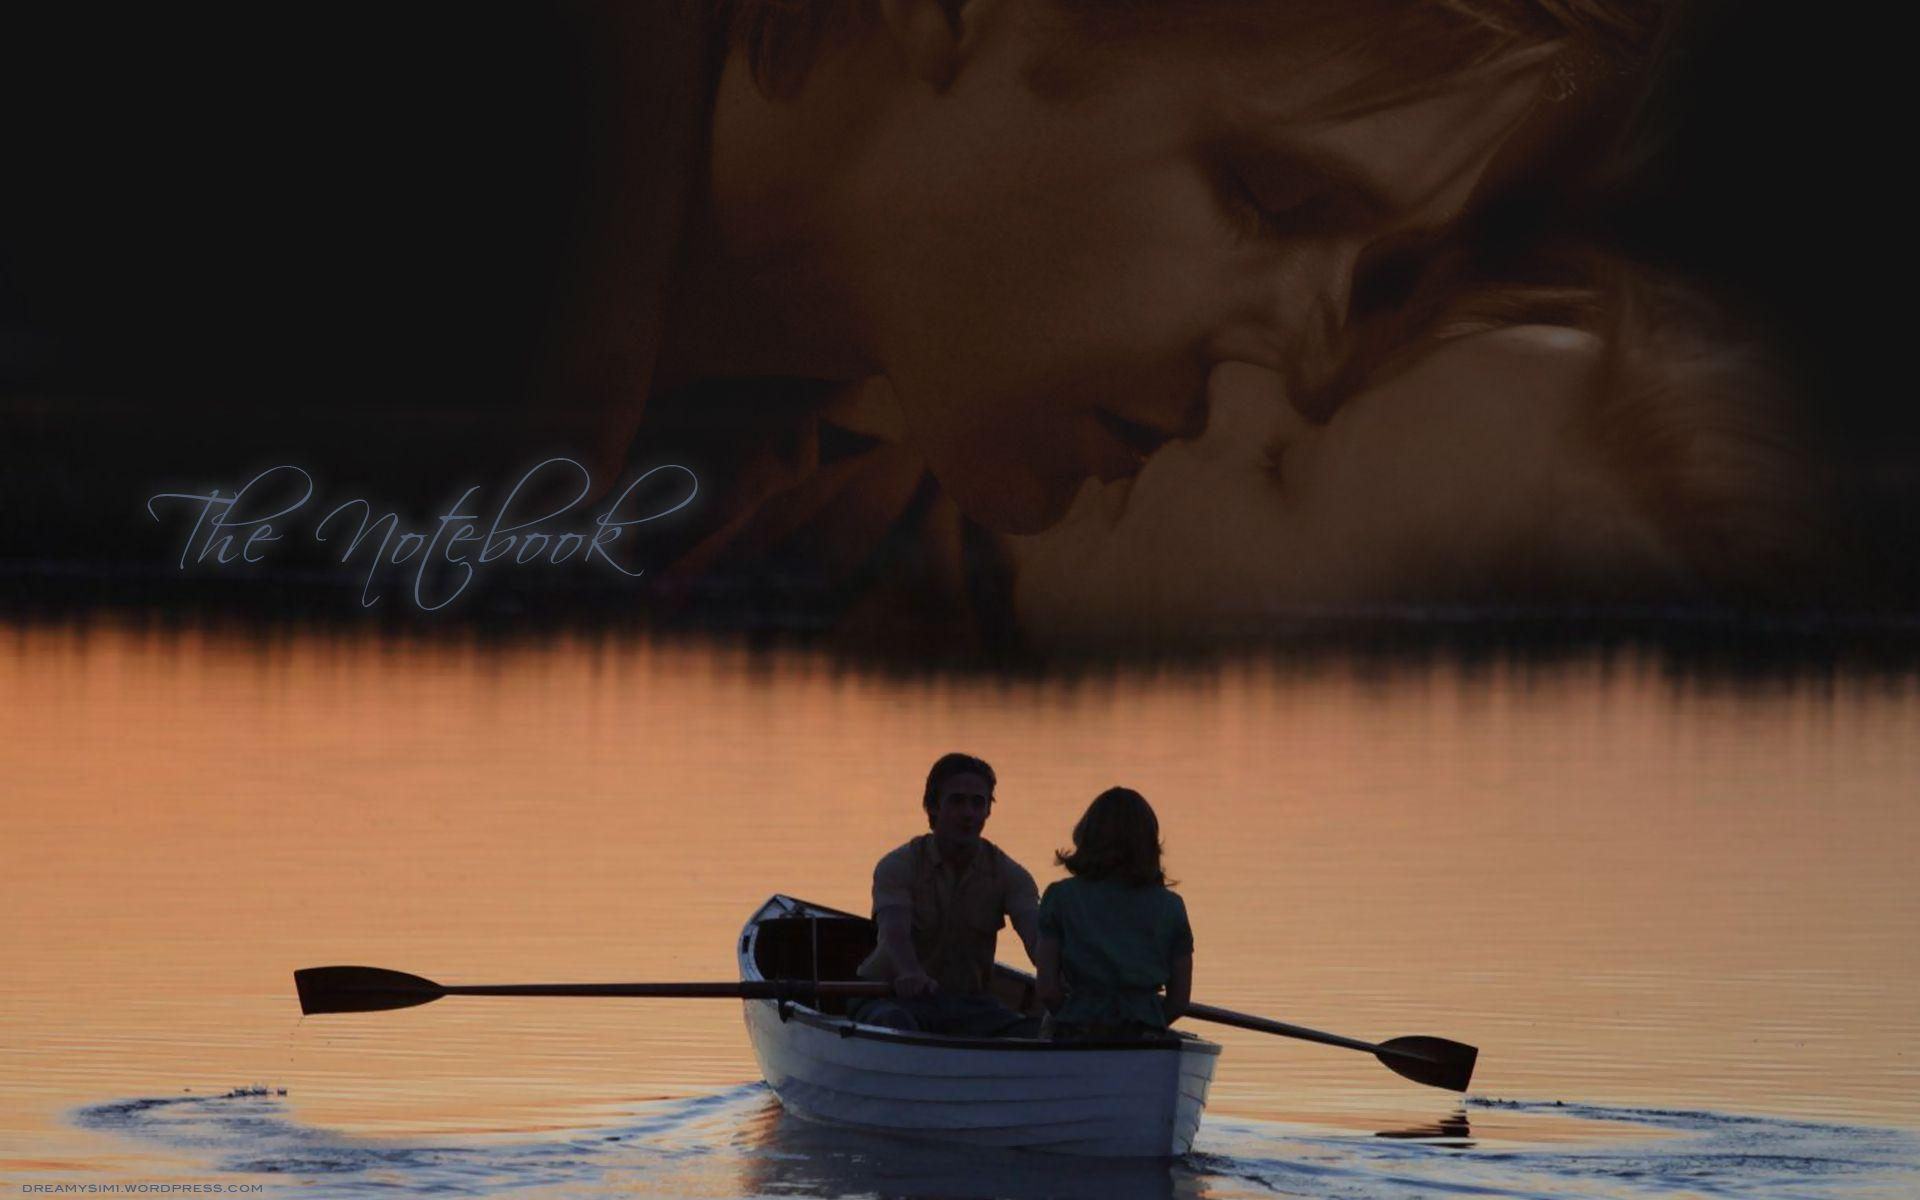 wallpapers The Notebook – kiss